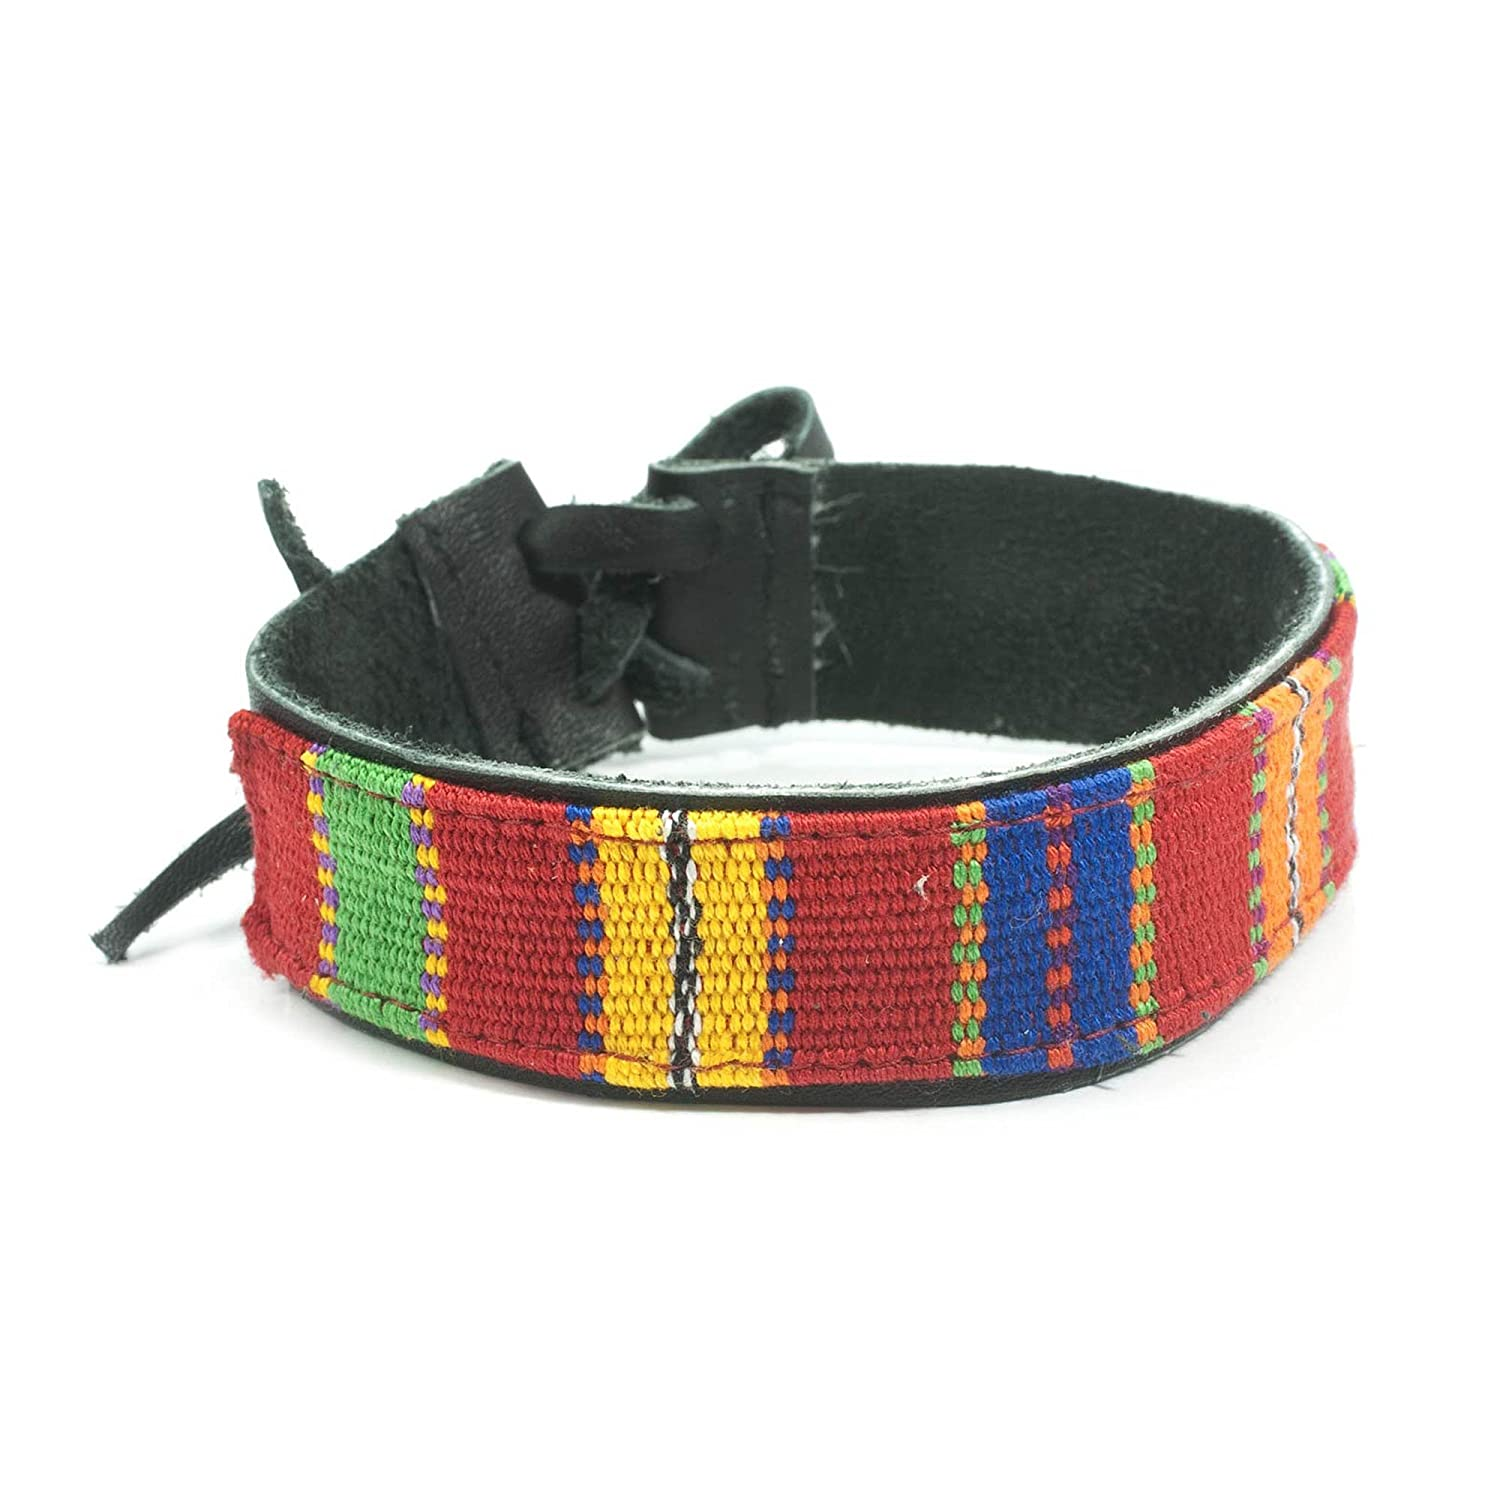 """NOVICA Woven Cotton and Leather Men's Wristband Bracelet with Tie Closure, 8.5"""", 'Maya Toucan'"""